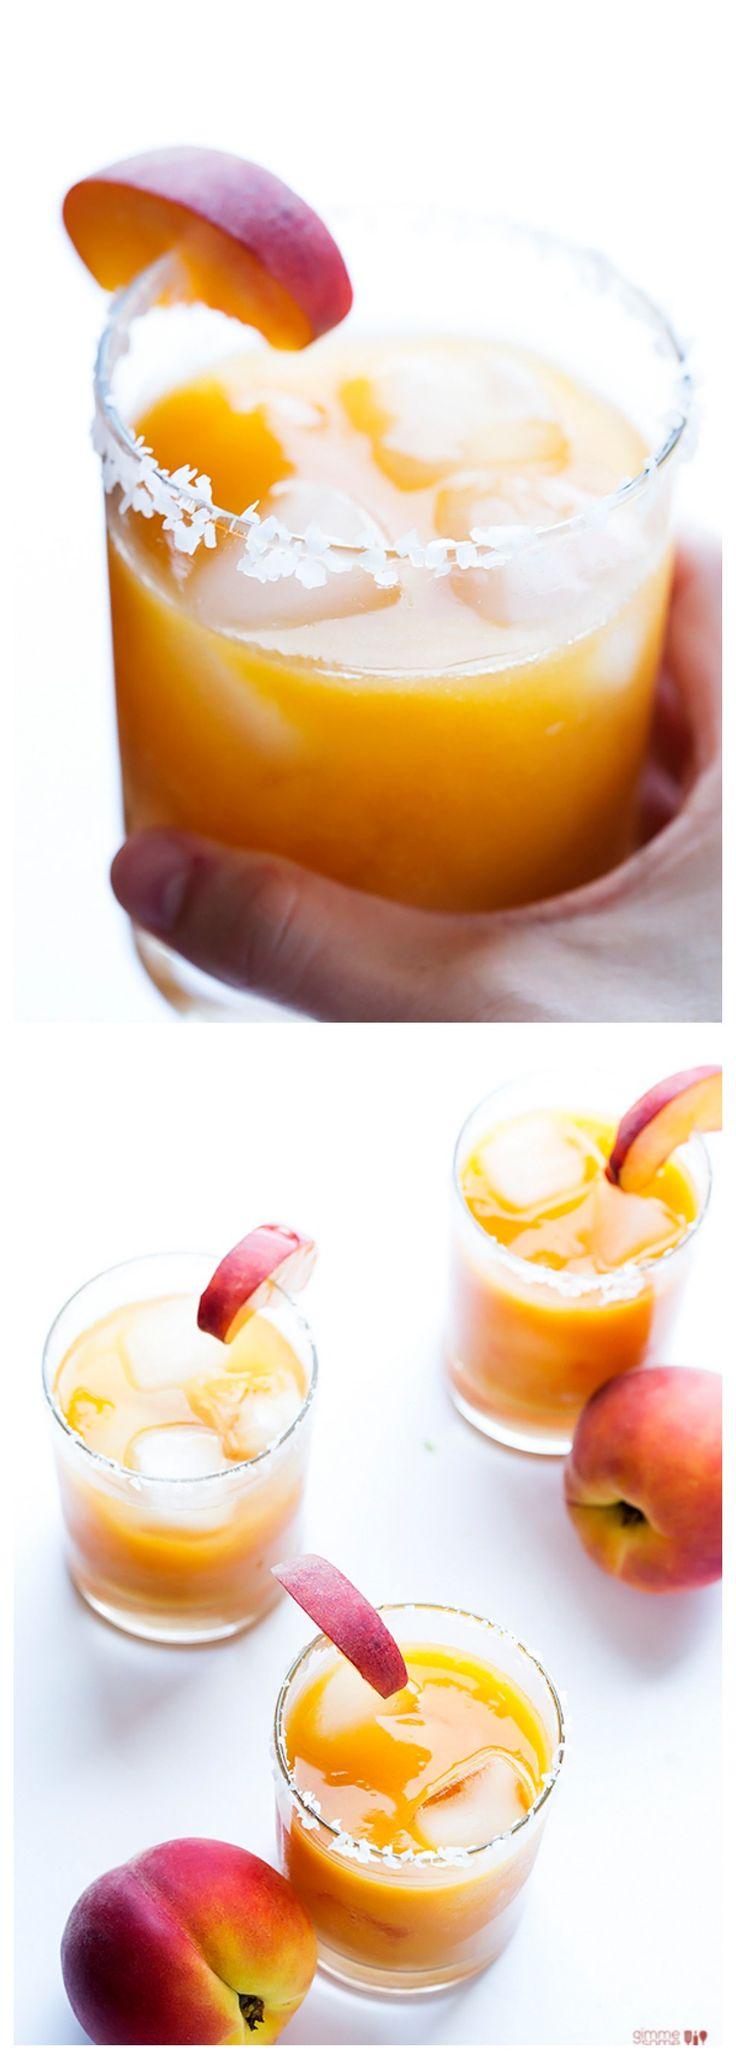 Fresh Peach Margaritas -- made simple with fresh peaches, these sweet and refreshing drinks are perfect for summer! | gimmesomeoven.com #drinks: Peach Margarita Recipes, Summer Drinks, Peaches Festivals, Margaritas Gimmesomeoven Com, Yummy Margaritas, Gimmesomeoven Com Drinks, Refreshing Drinks, Peaches Margaritas Recipes, Fresh Peaches